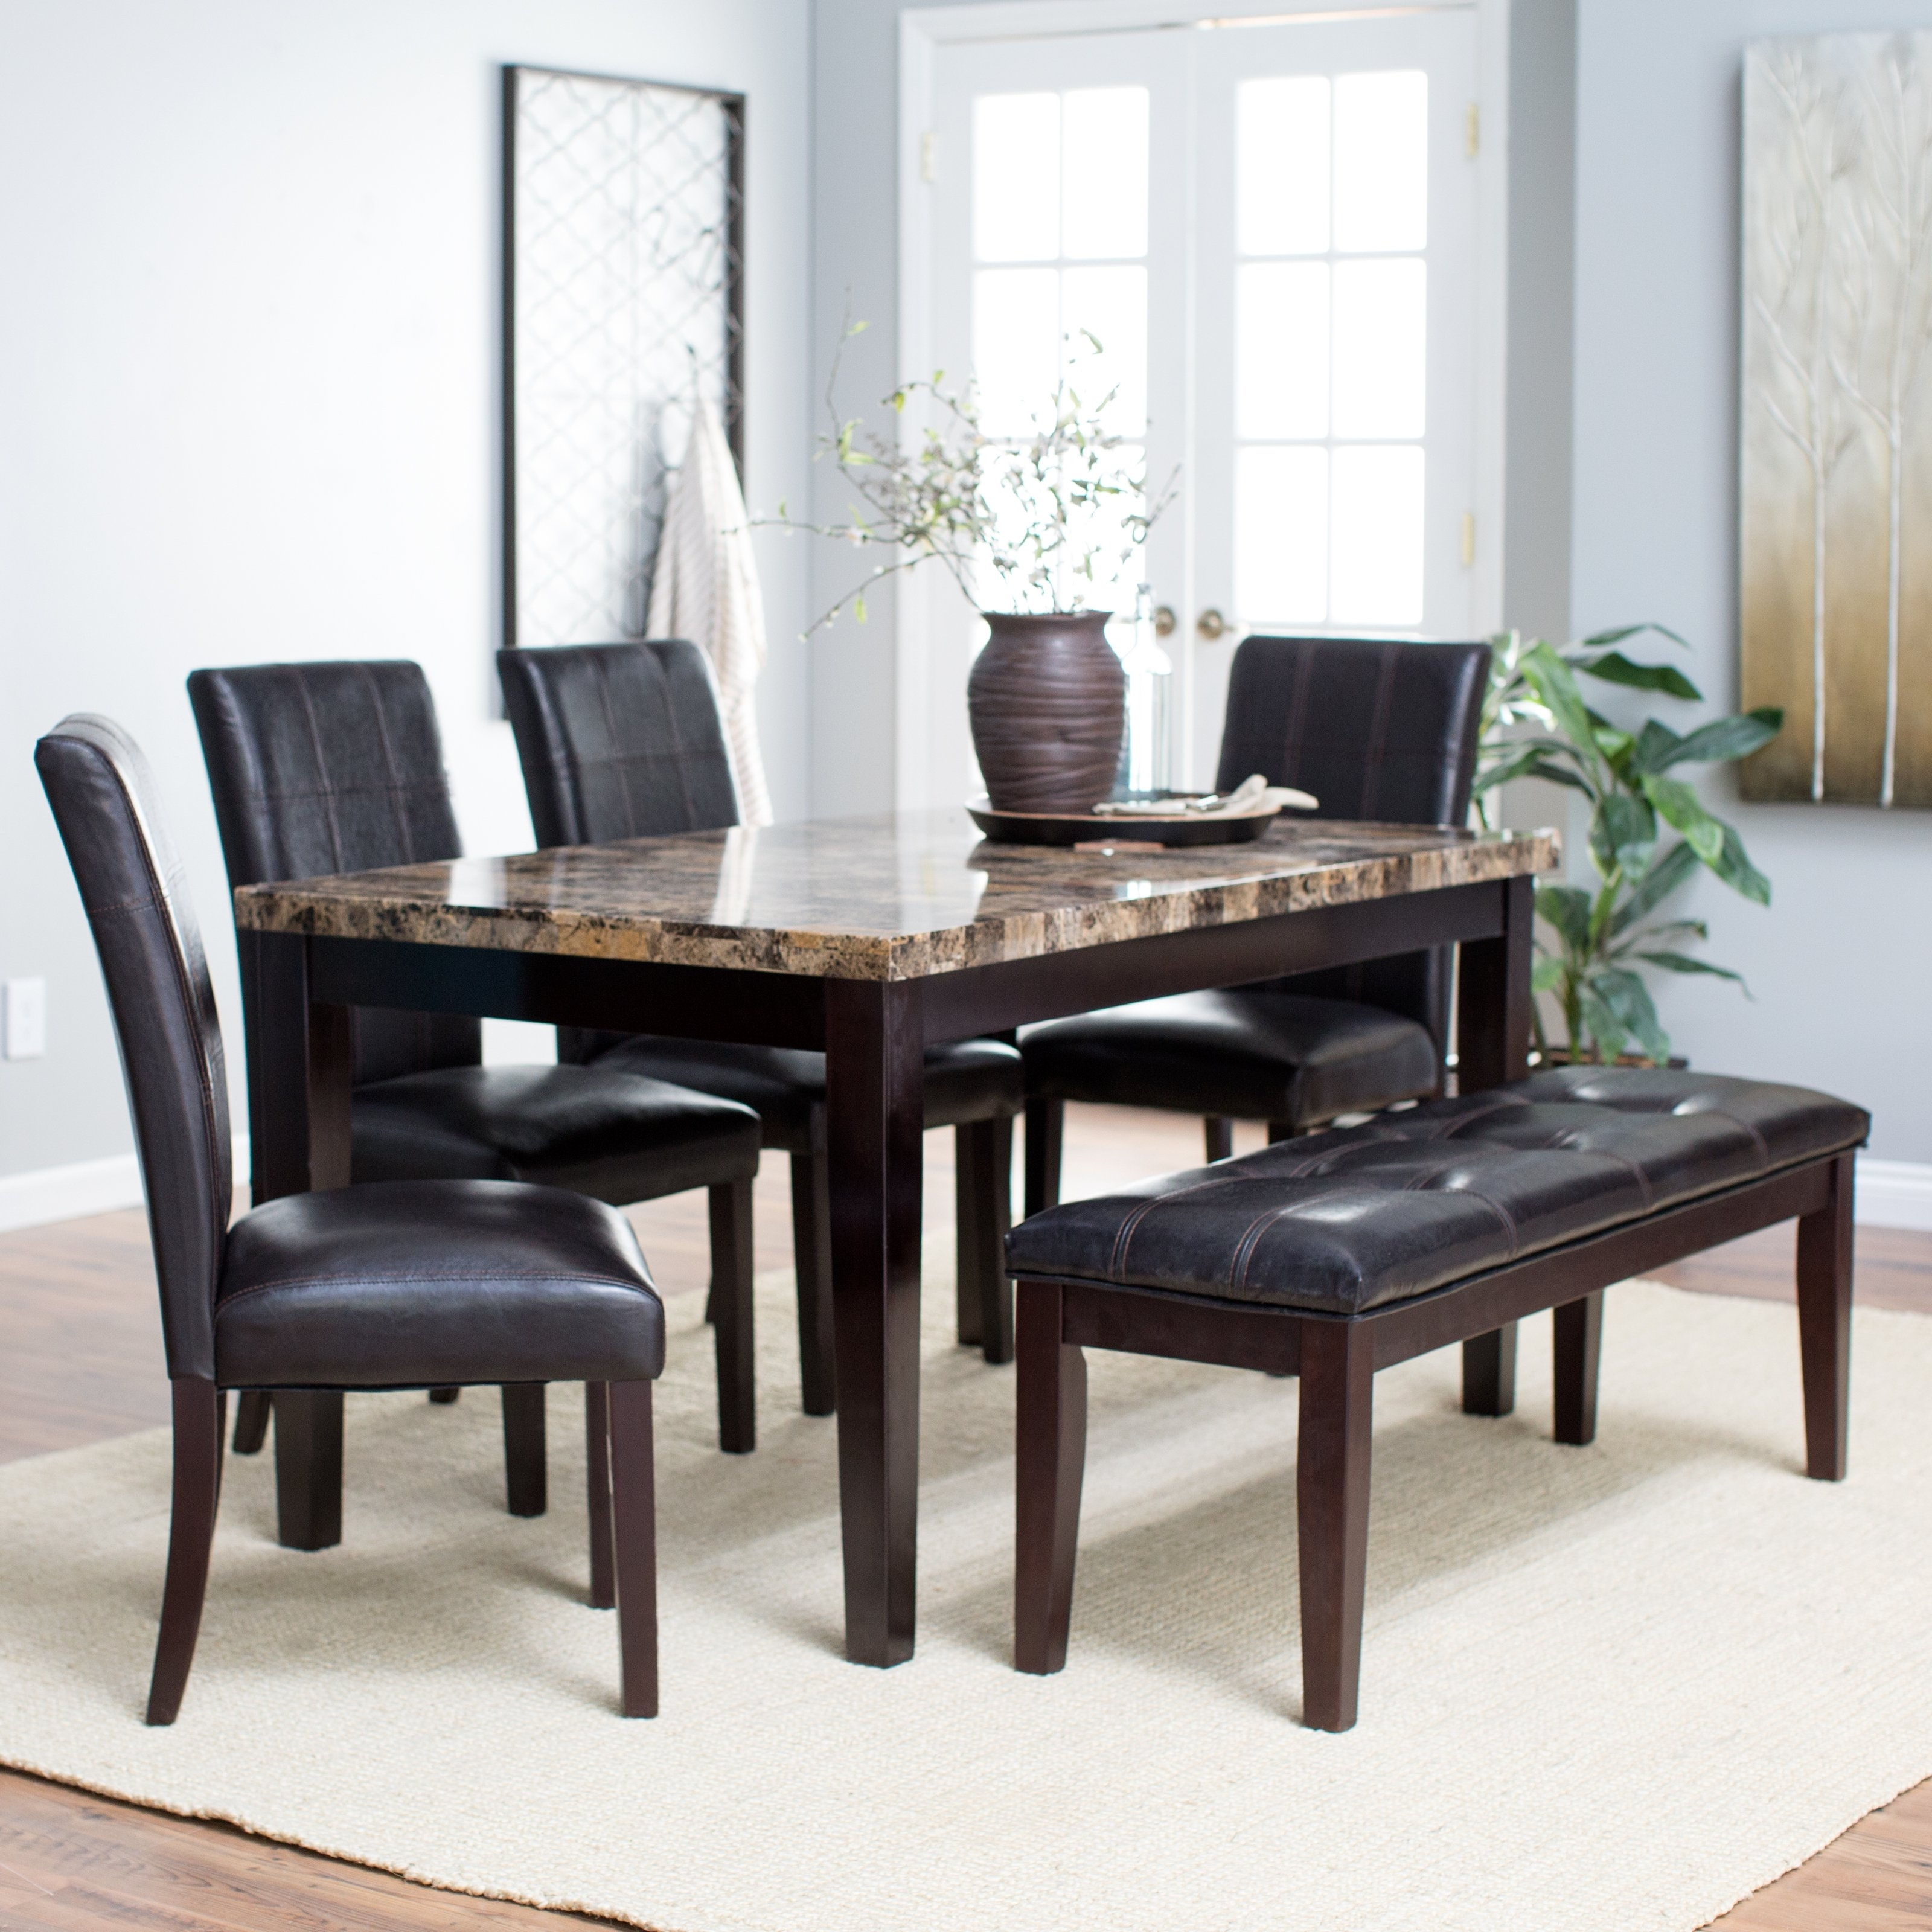 Widely Used Kitchen Dining Sets Throughout Types Of Dining Table Sets – Pickndecor (View 9 of 25)